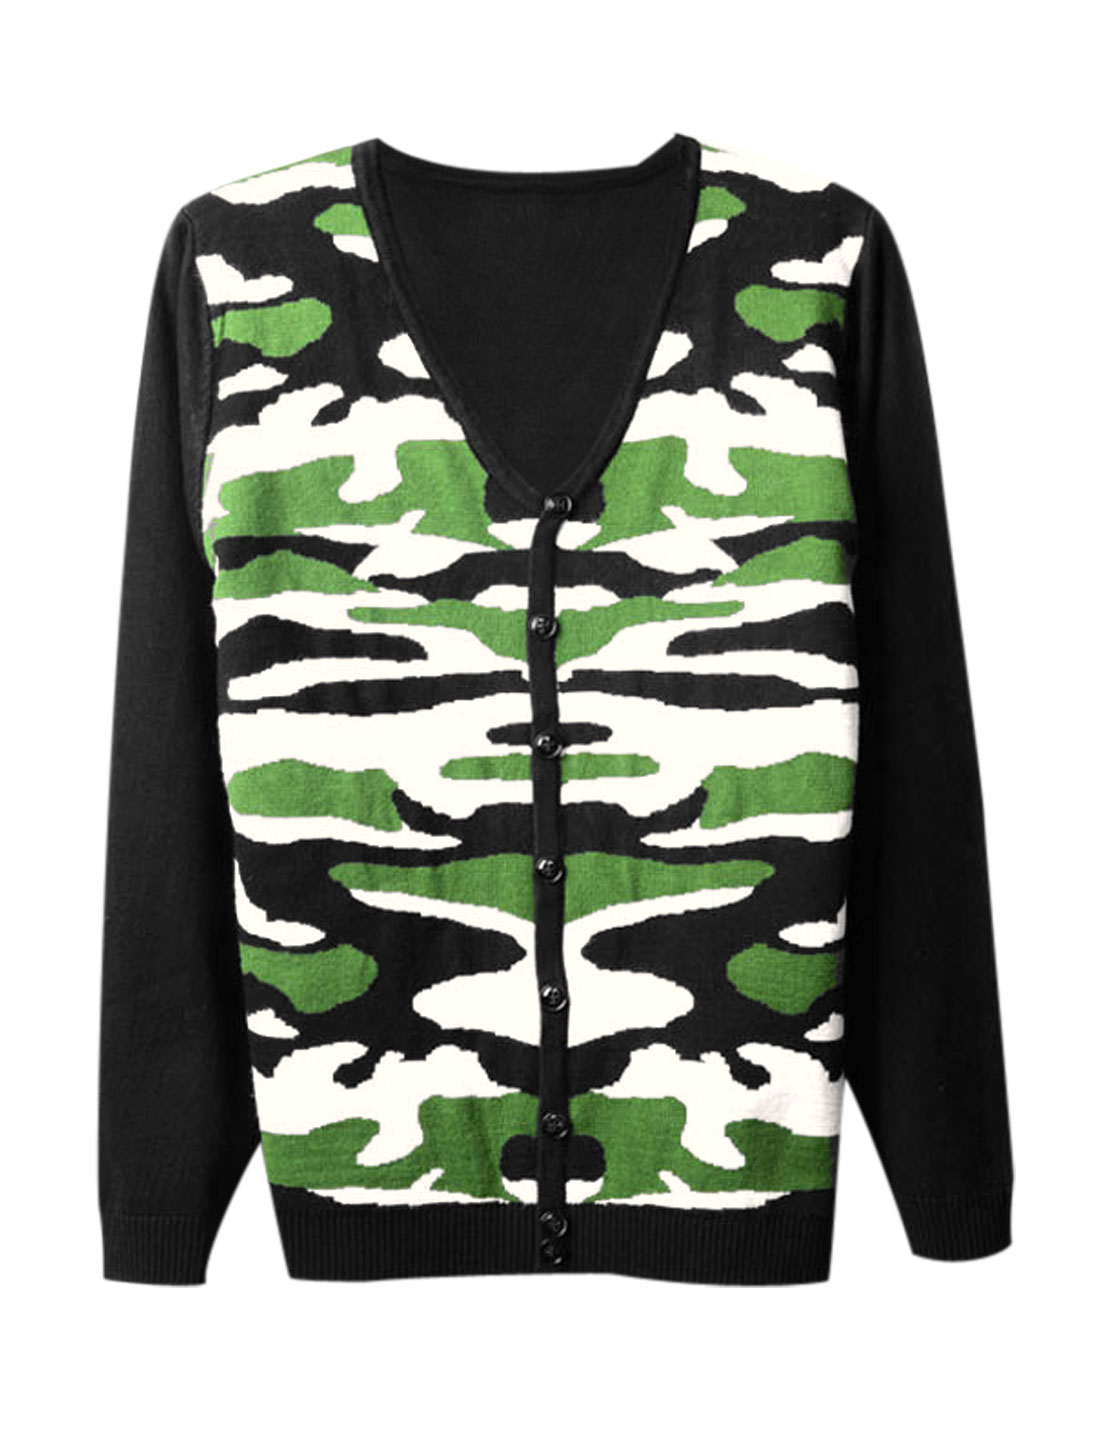 Men Single Breasted Contrast Camo Print Stylish Cardigan Green Black S